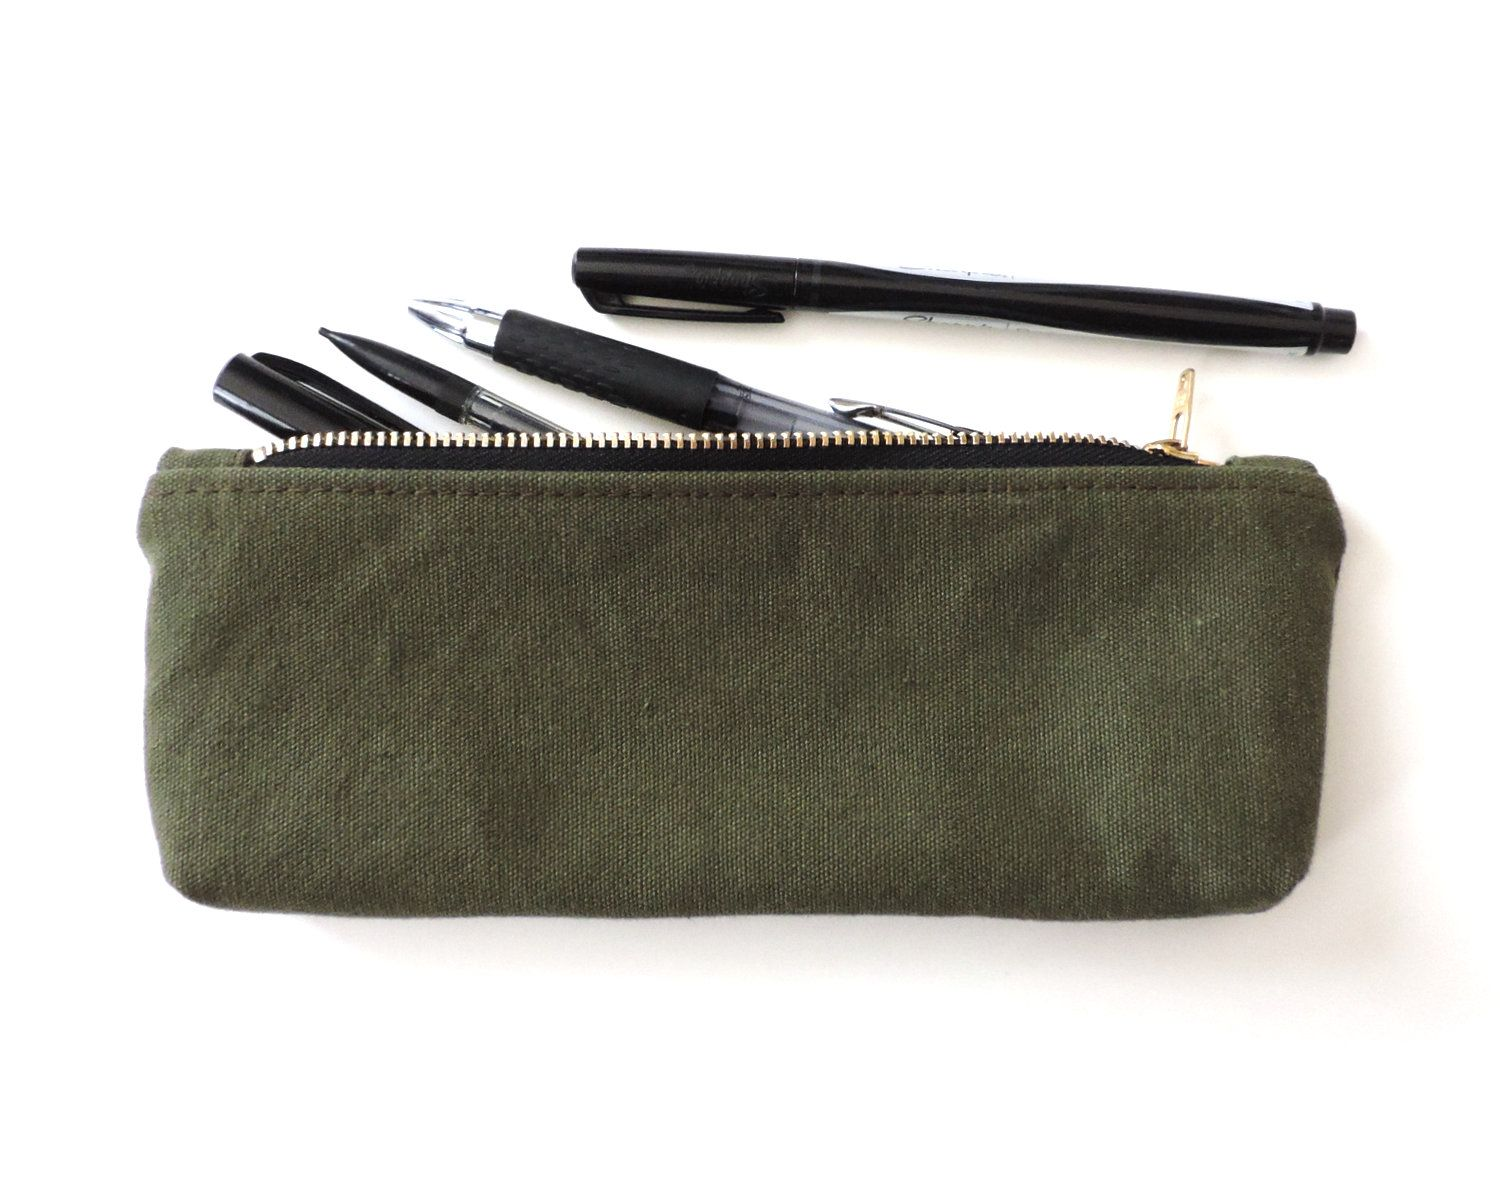 Military Canvas Pencil Case Zipper Pencil Pouch Recycled Eco Friendly Made In Usa Handmade By Lindock Pencil Case Pouch Canvas Pencil Case Pencil Case